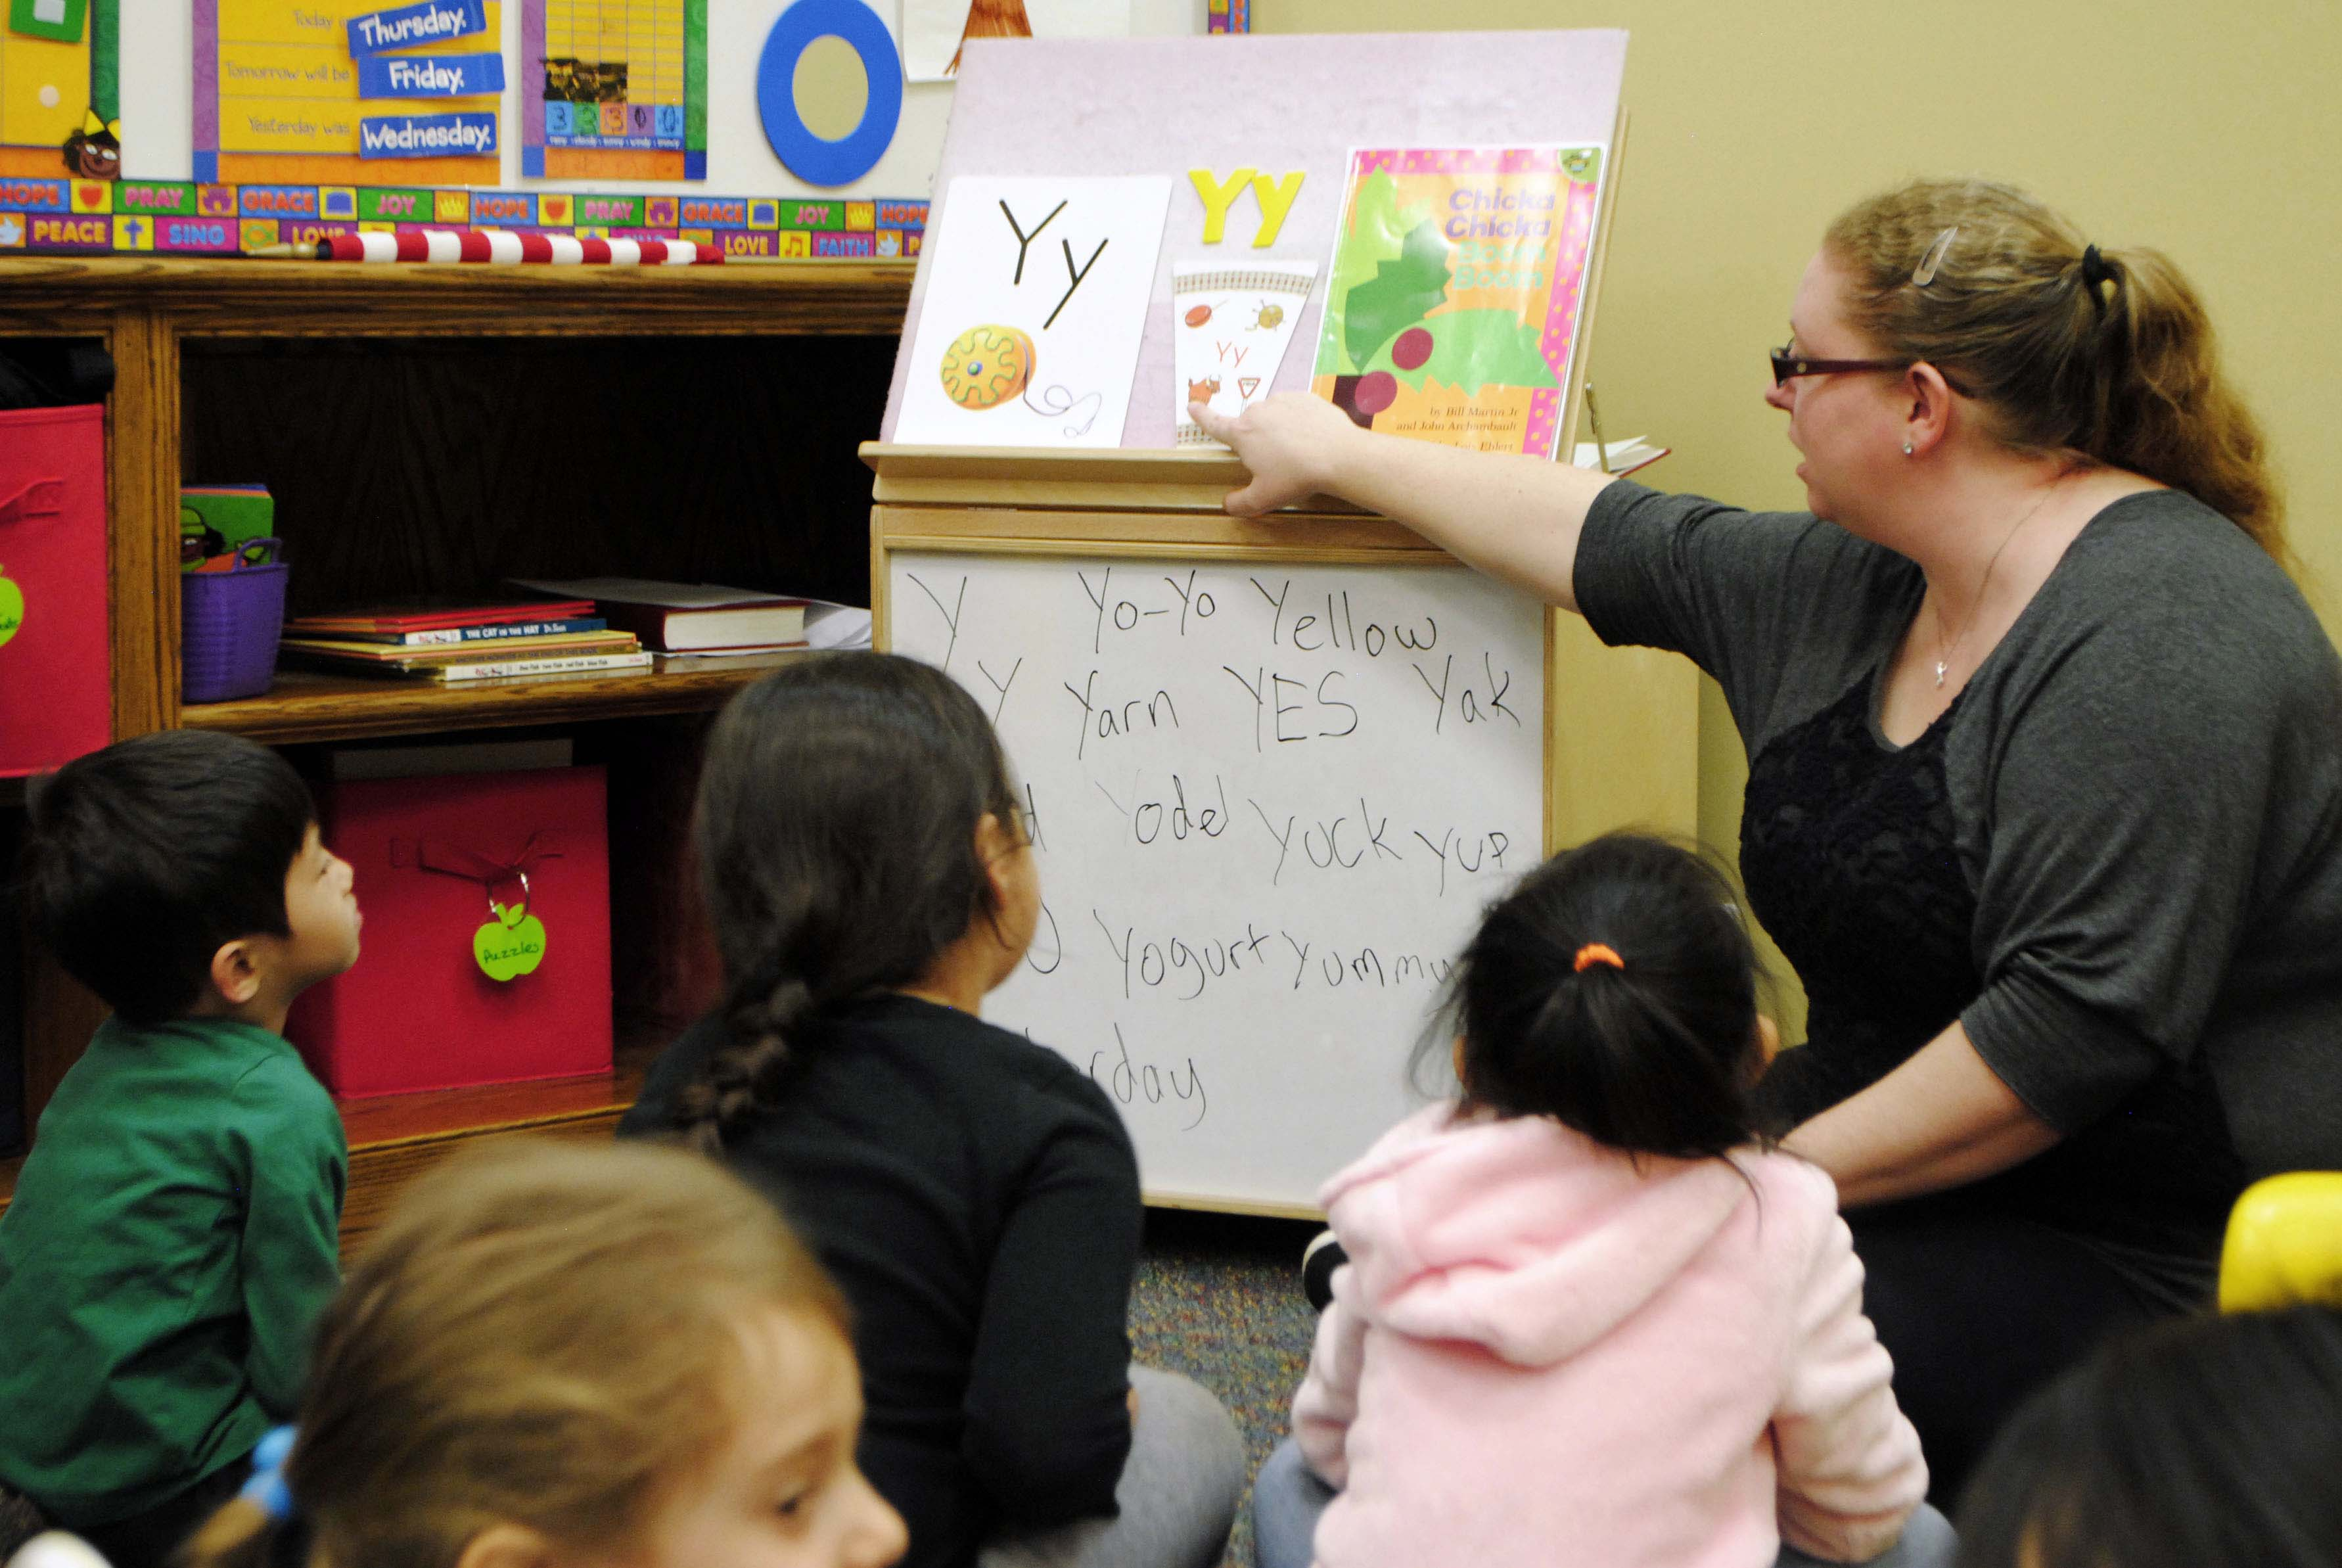 early learning environment Our learning environment is an early childhood center for toddlers and preschoolers that centers around an academic and play-based developmentally appropriate curriculum.